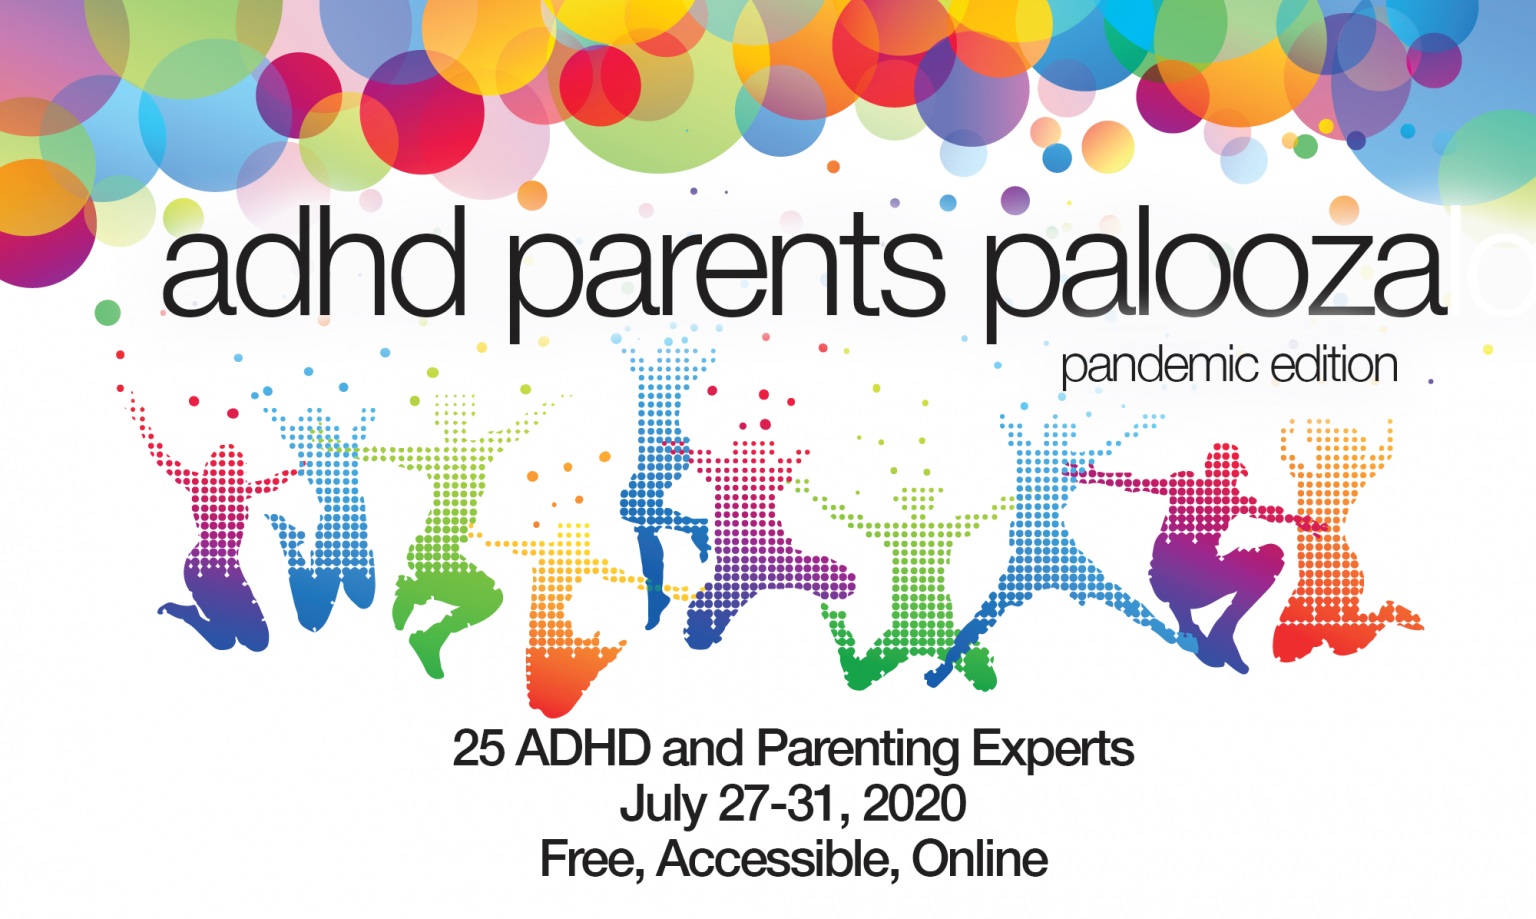 ADHD Parents' Palooza Summit